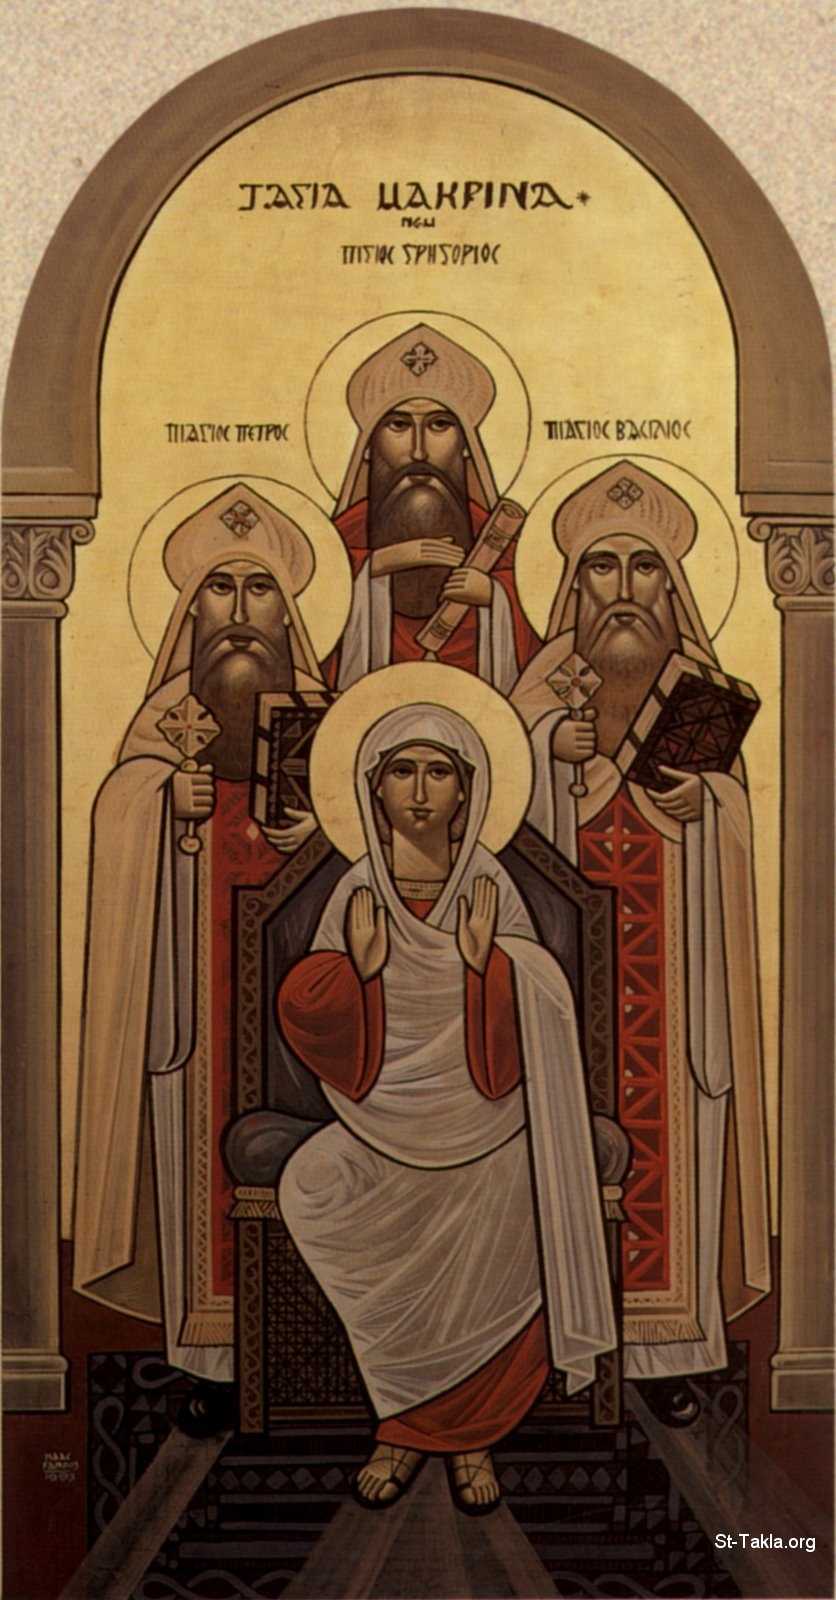 St-Takla.org Image: St. Macrina the Elder and sister of St. Basil and St. Gregory of Nyssa and St. Peter of Sebastea by Isaac Fanous ���� �� ���� ������ ����: ������ ������� ������� ����� ������ ��� �� ������ �������� � ������ ���������� ���� ���ա ������� ���� ���� ������